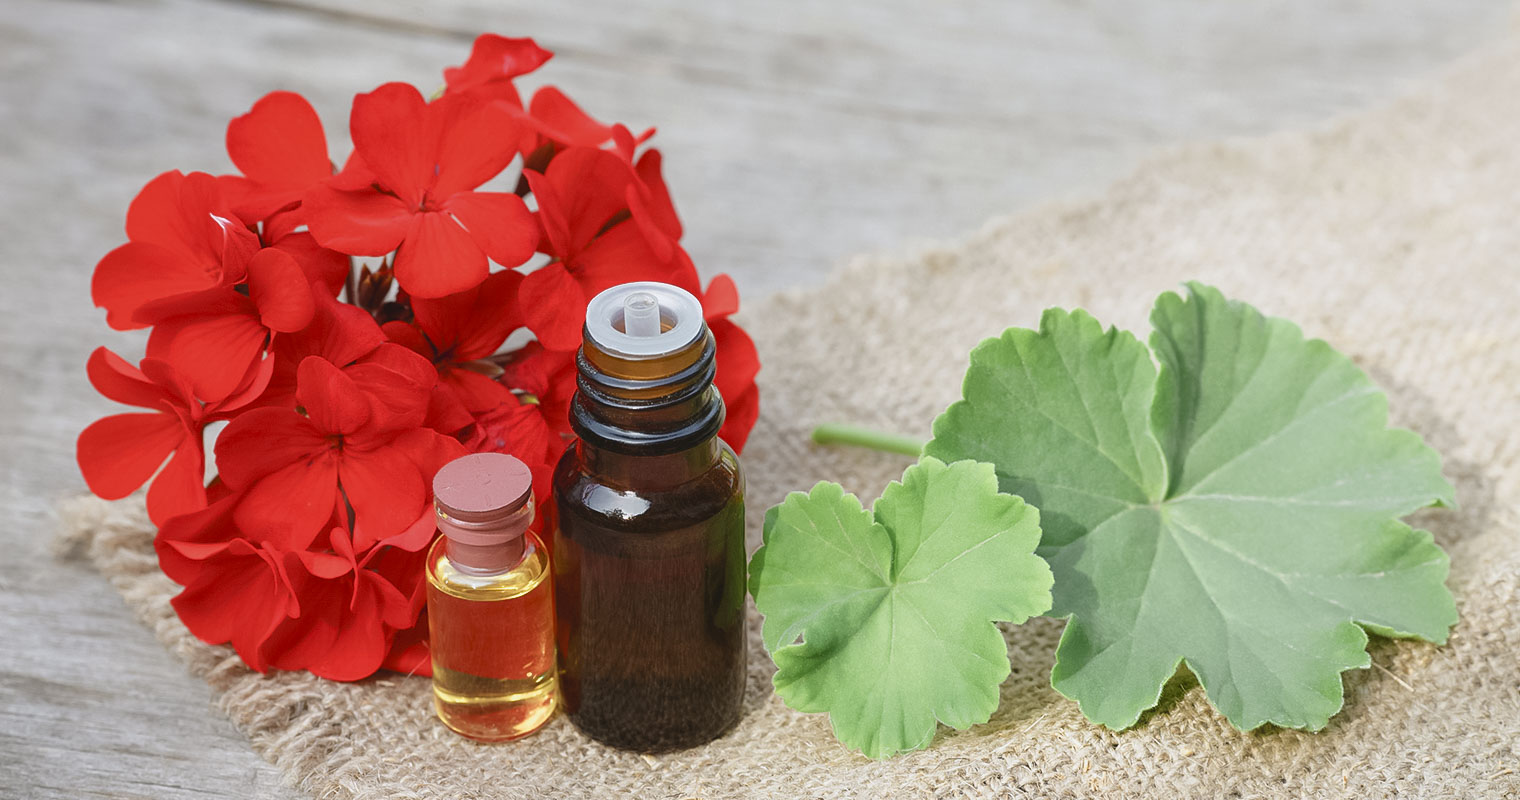 Geranium flower and leaf with a bottle containing Geranium oil